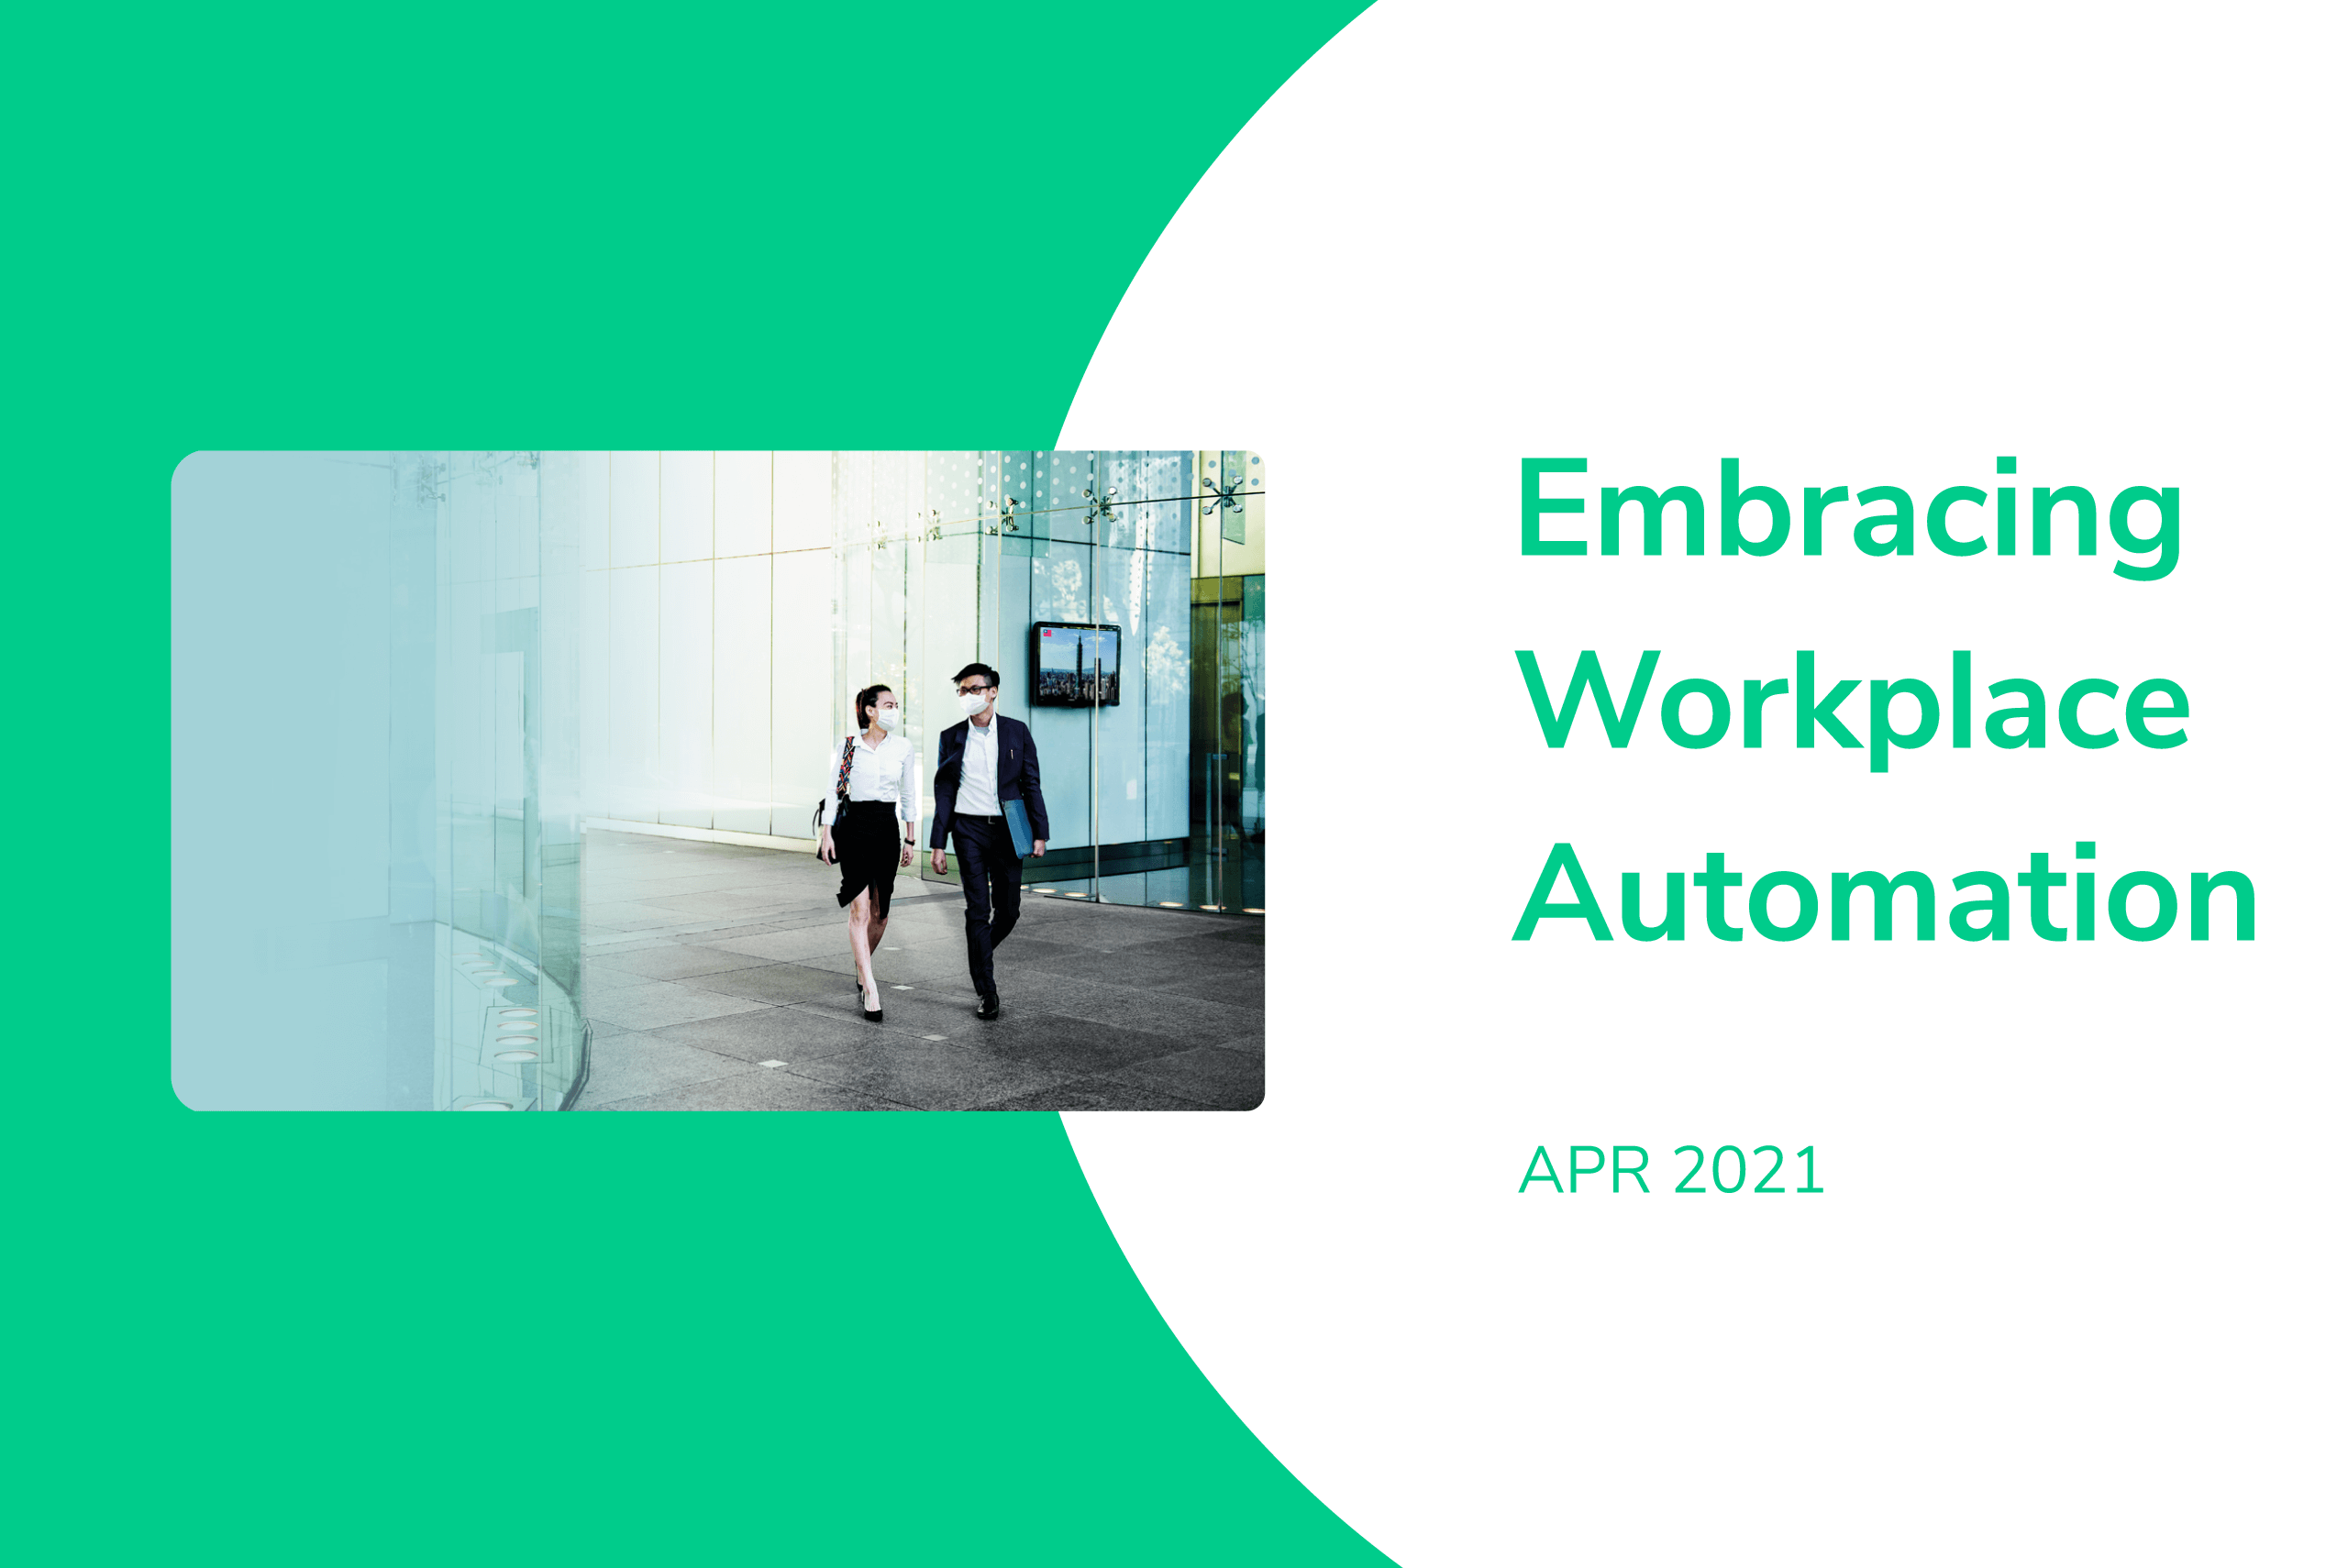 Embracing Workplace Automation